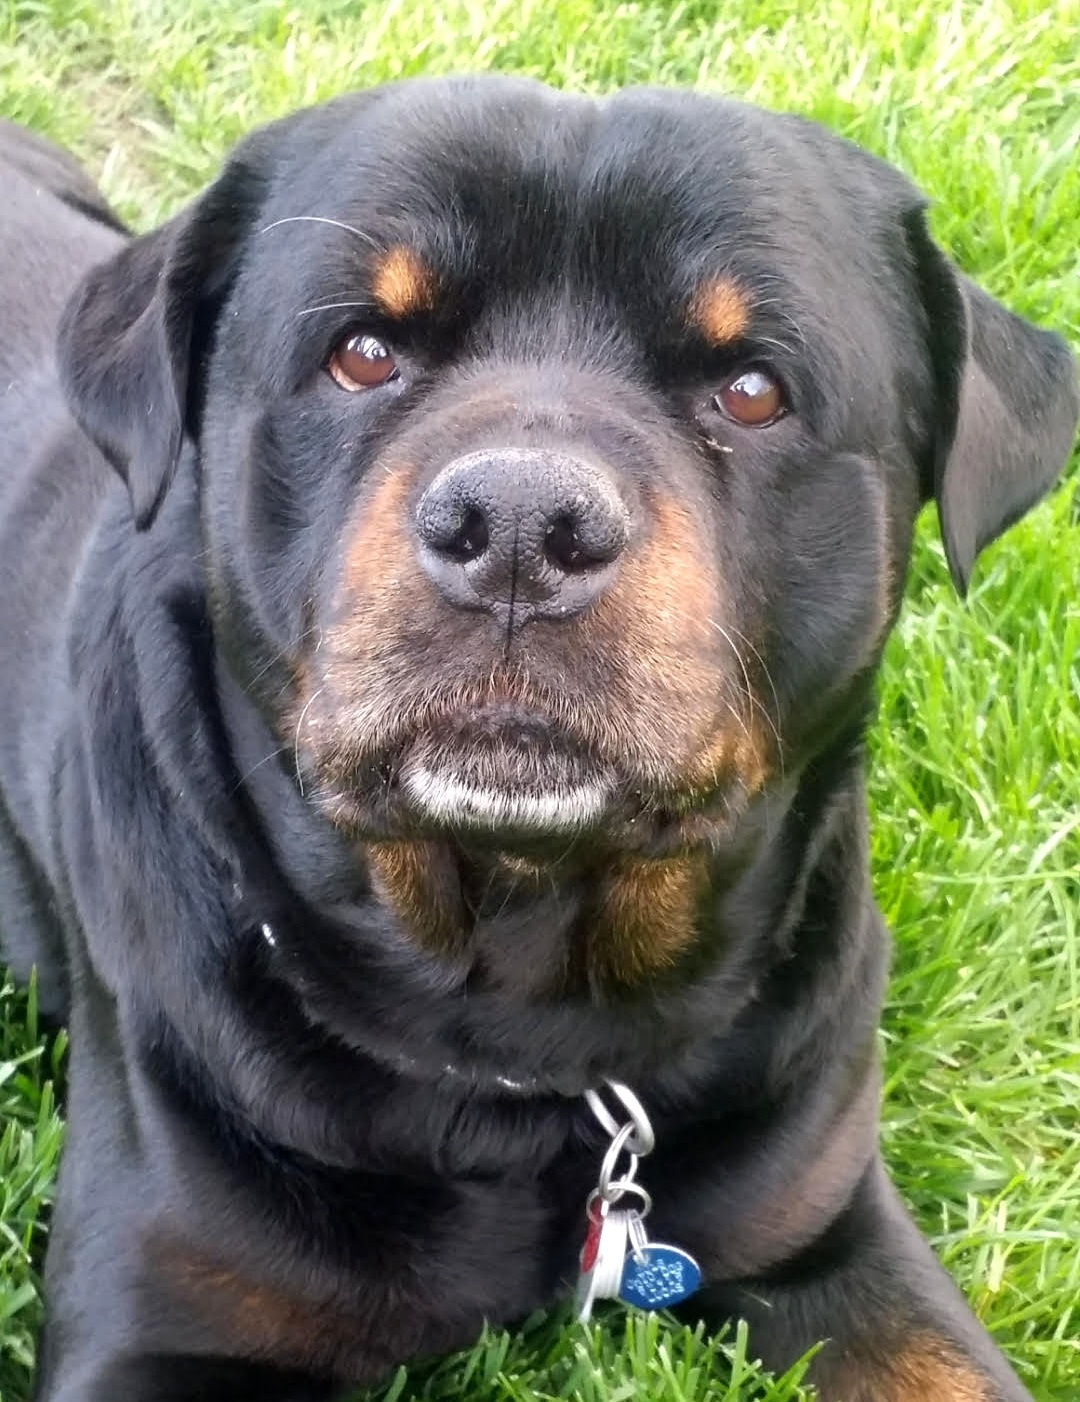 - Meet Ozzy! 12 year old Rottweiler from Toledo, OH in need of a large rear-end wheelchair: $450.(12.18.18: $30.00 received)100% of your money brings wheelchairs to dogs in need when you donate.